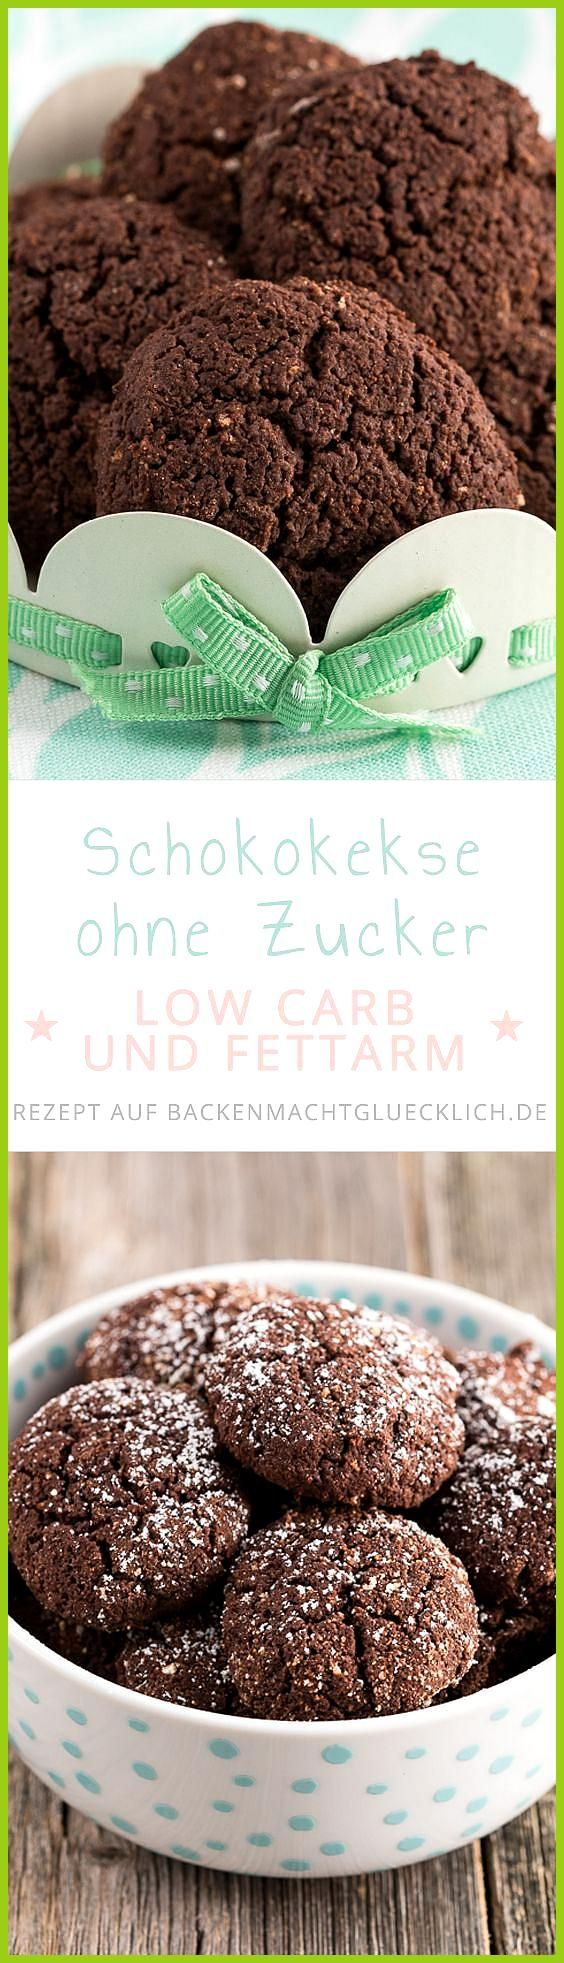 Low Carb Schokokekse ohne Zucker #Carb #Fitness food challenge #Fitness food clean eating #ohne #Sch...